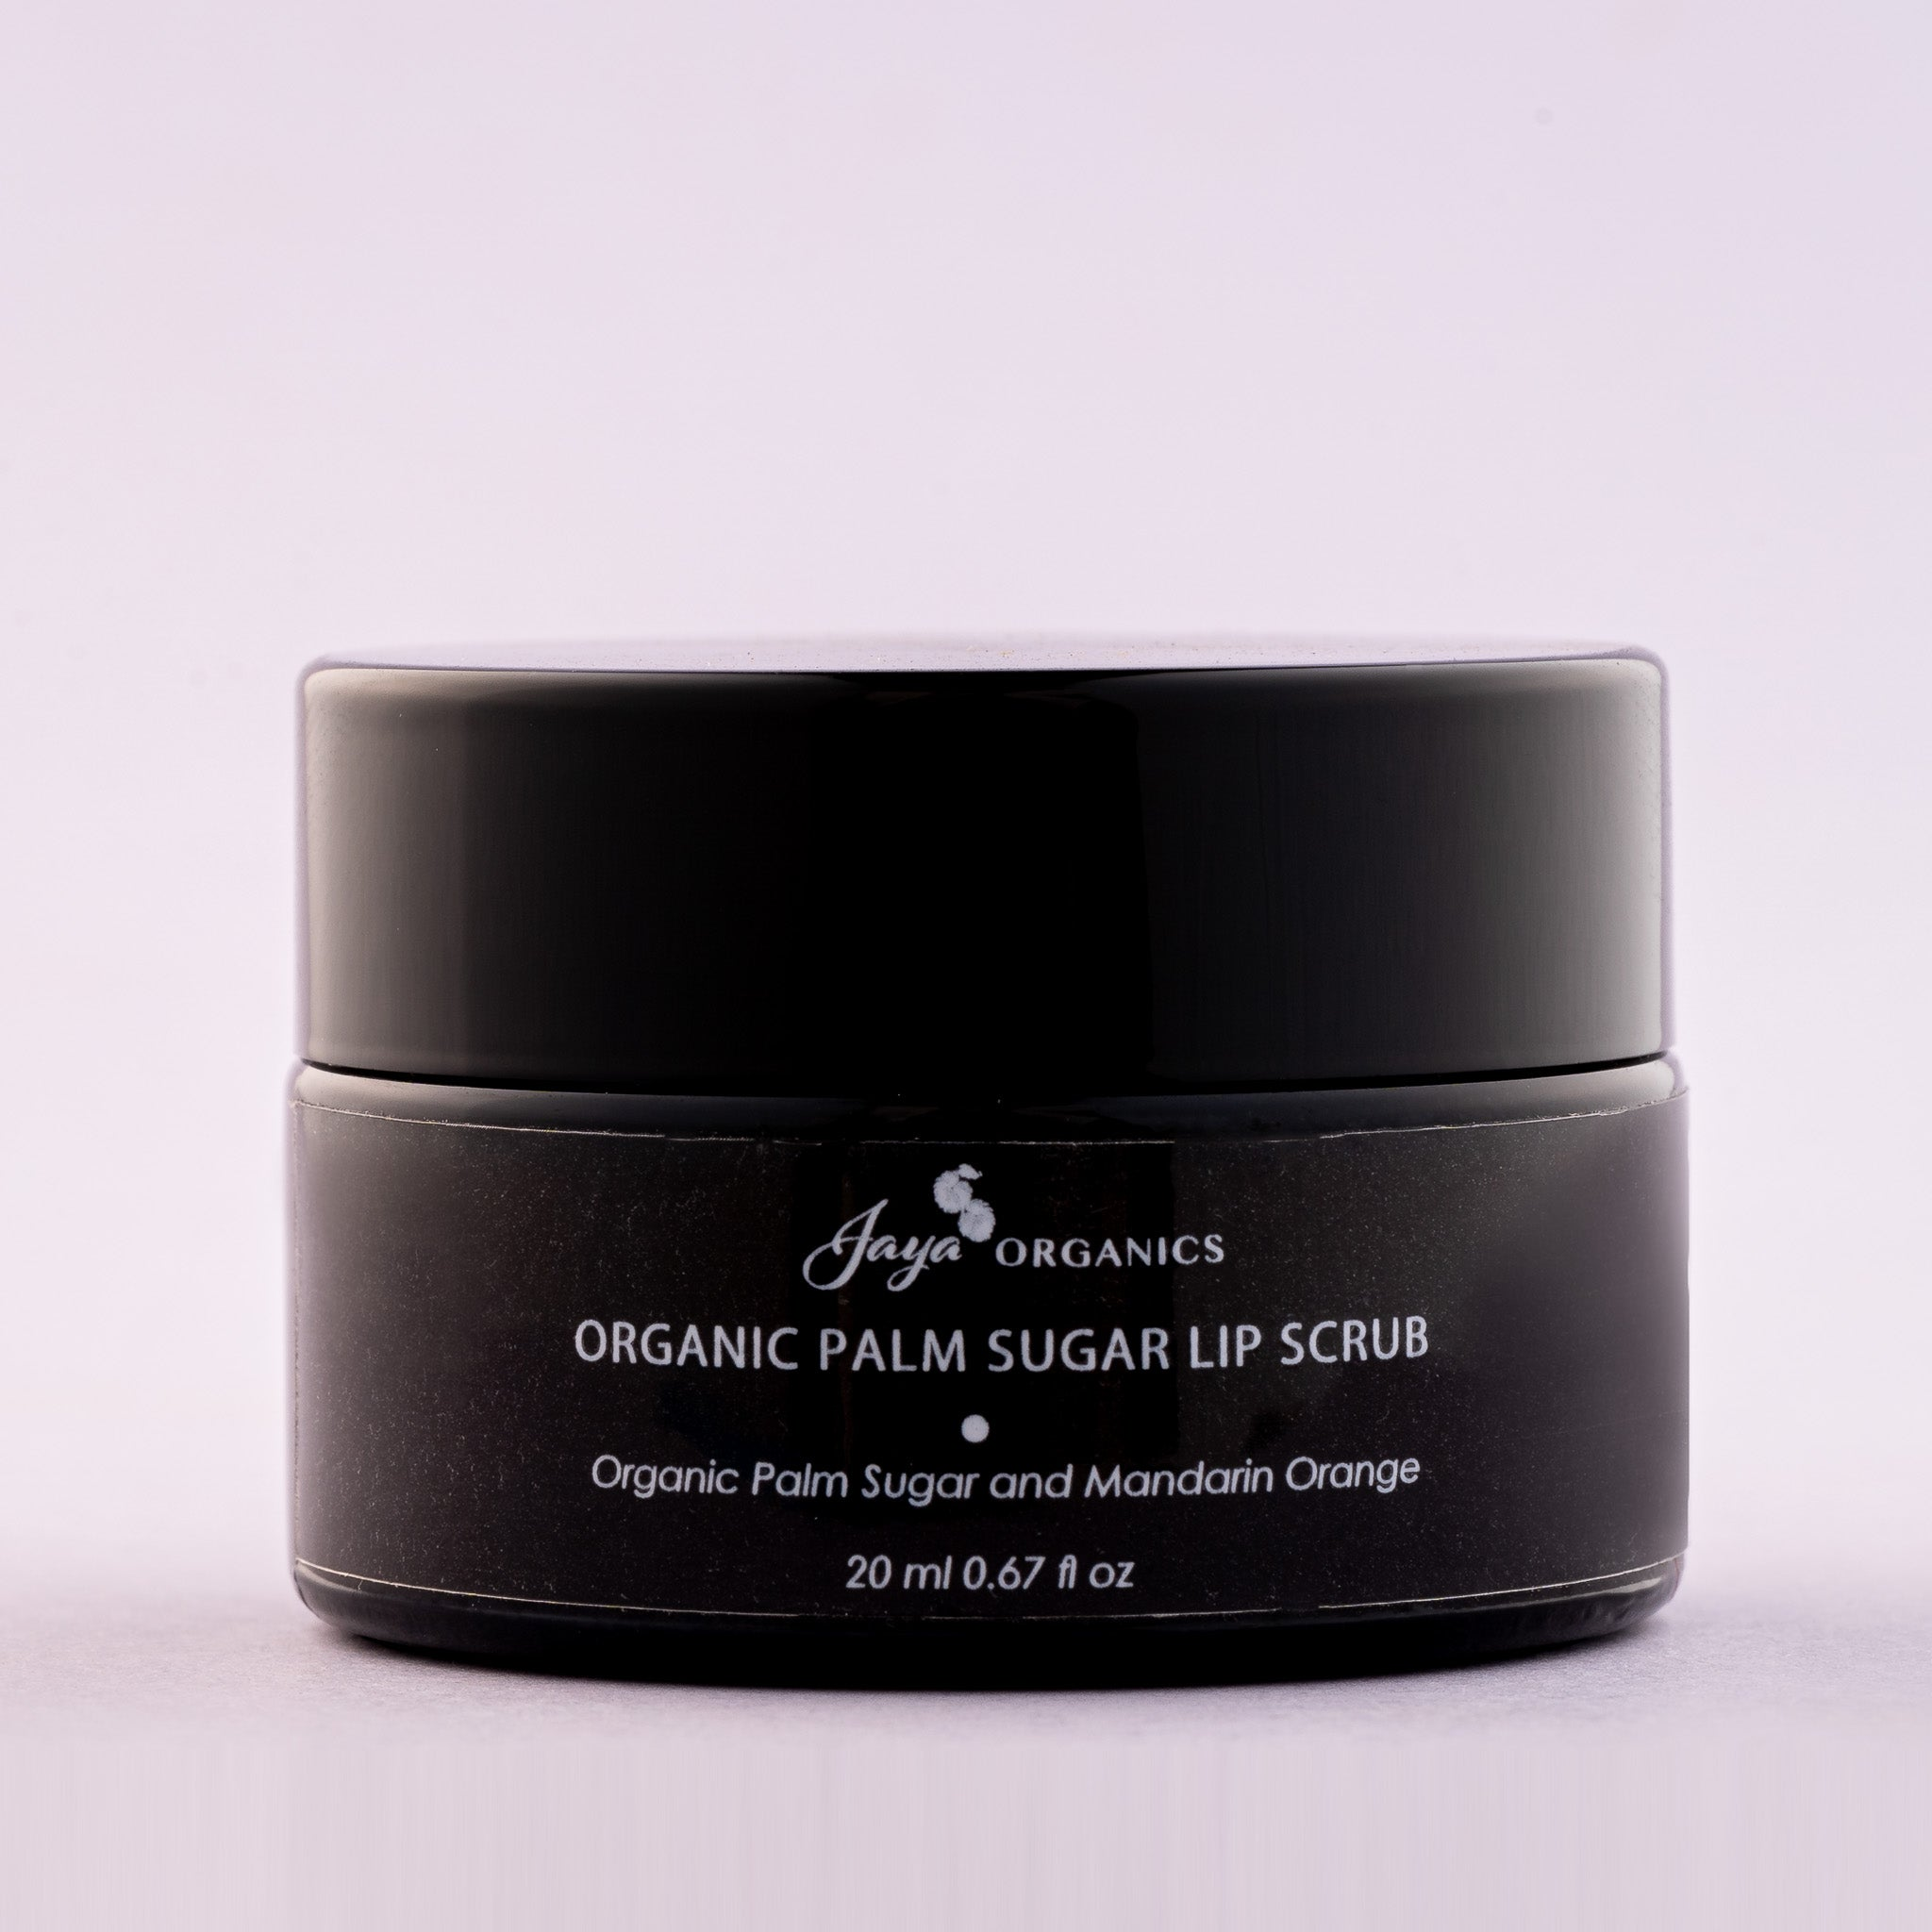 Organic Palm Sugar Lip Scrub - SATU